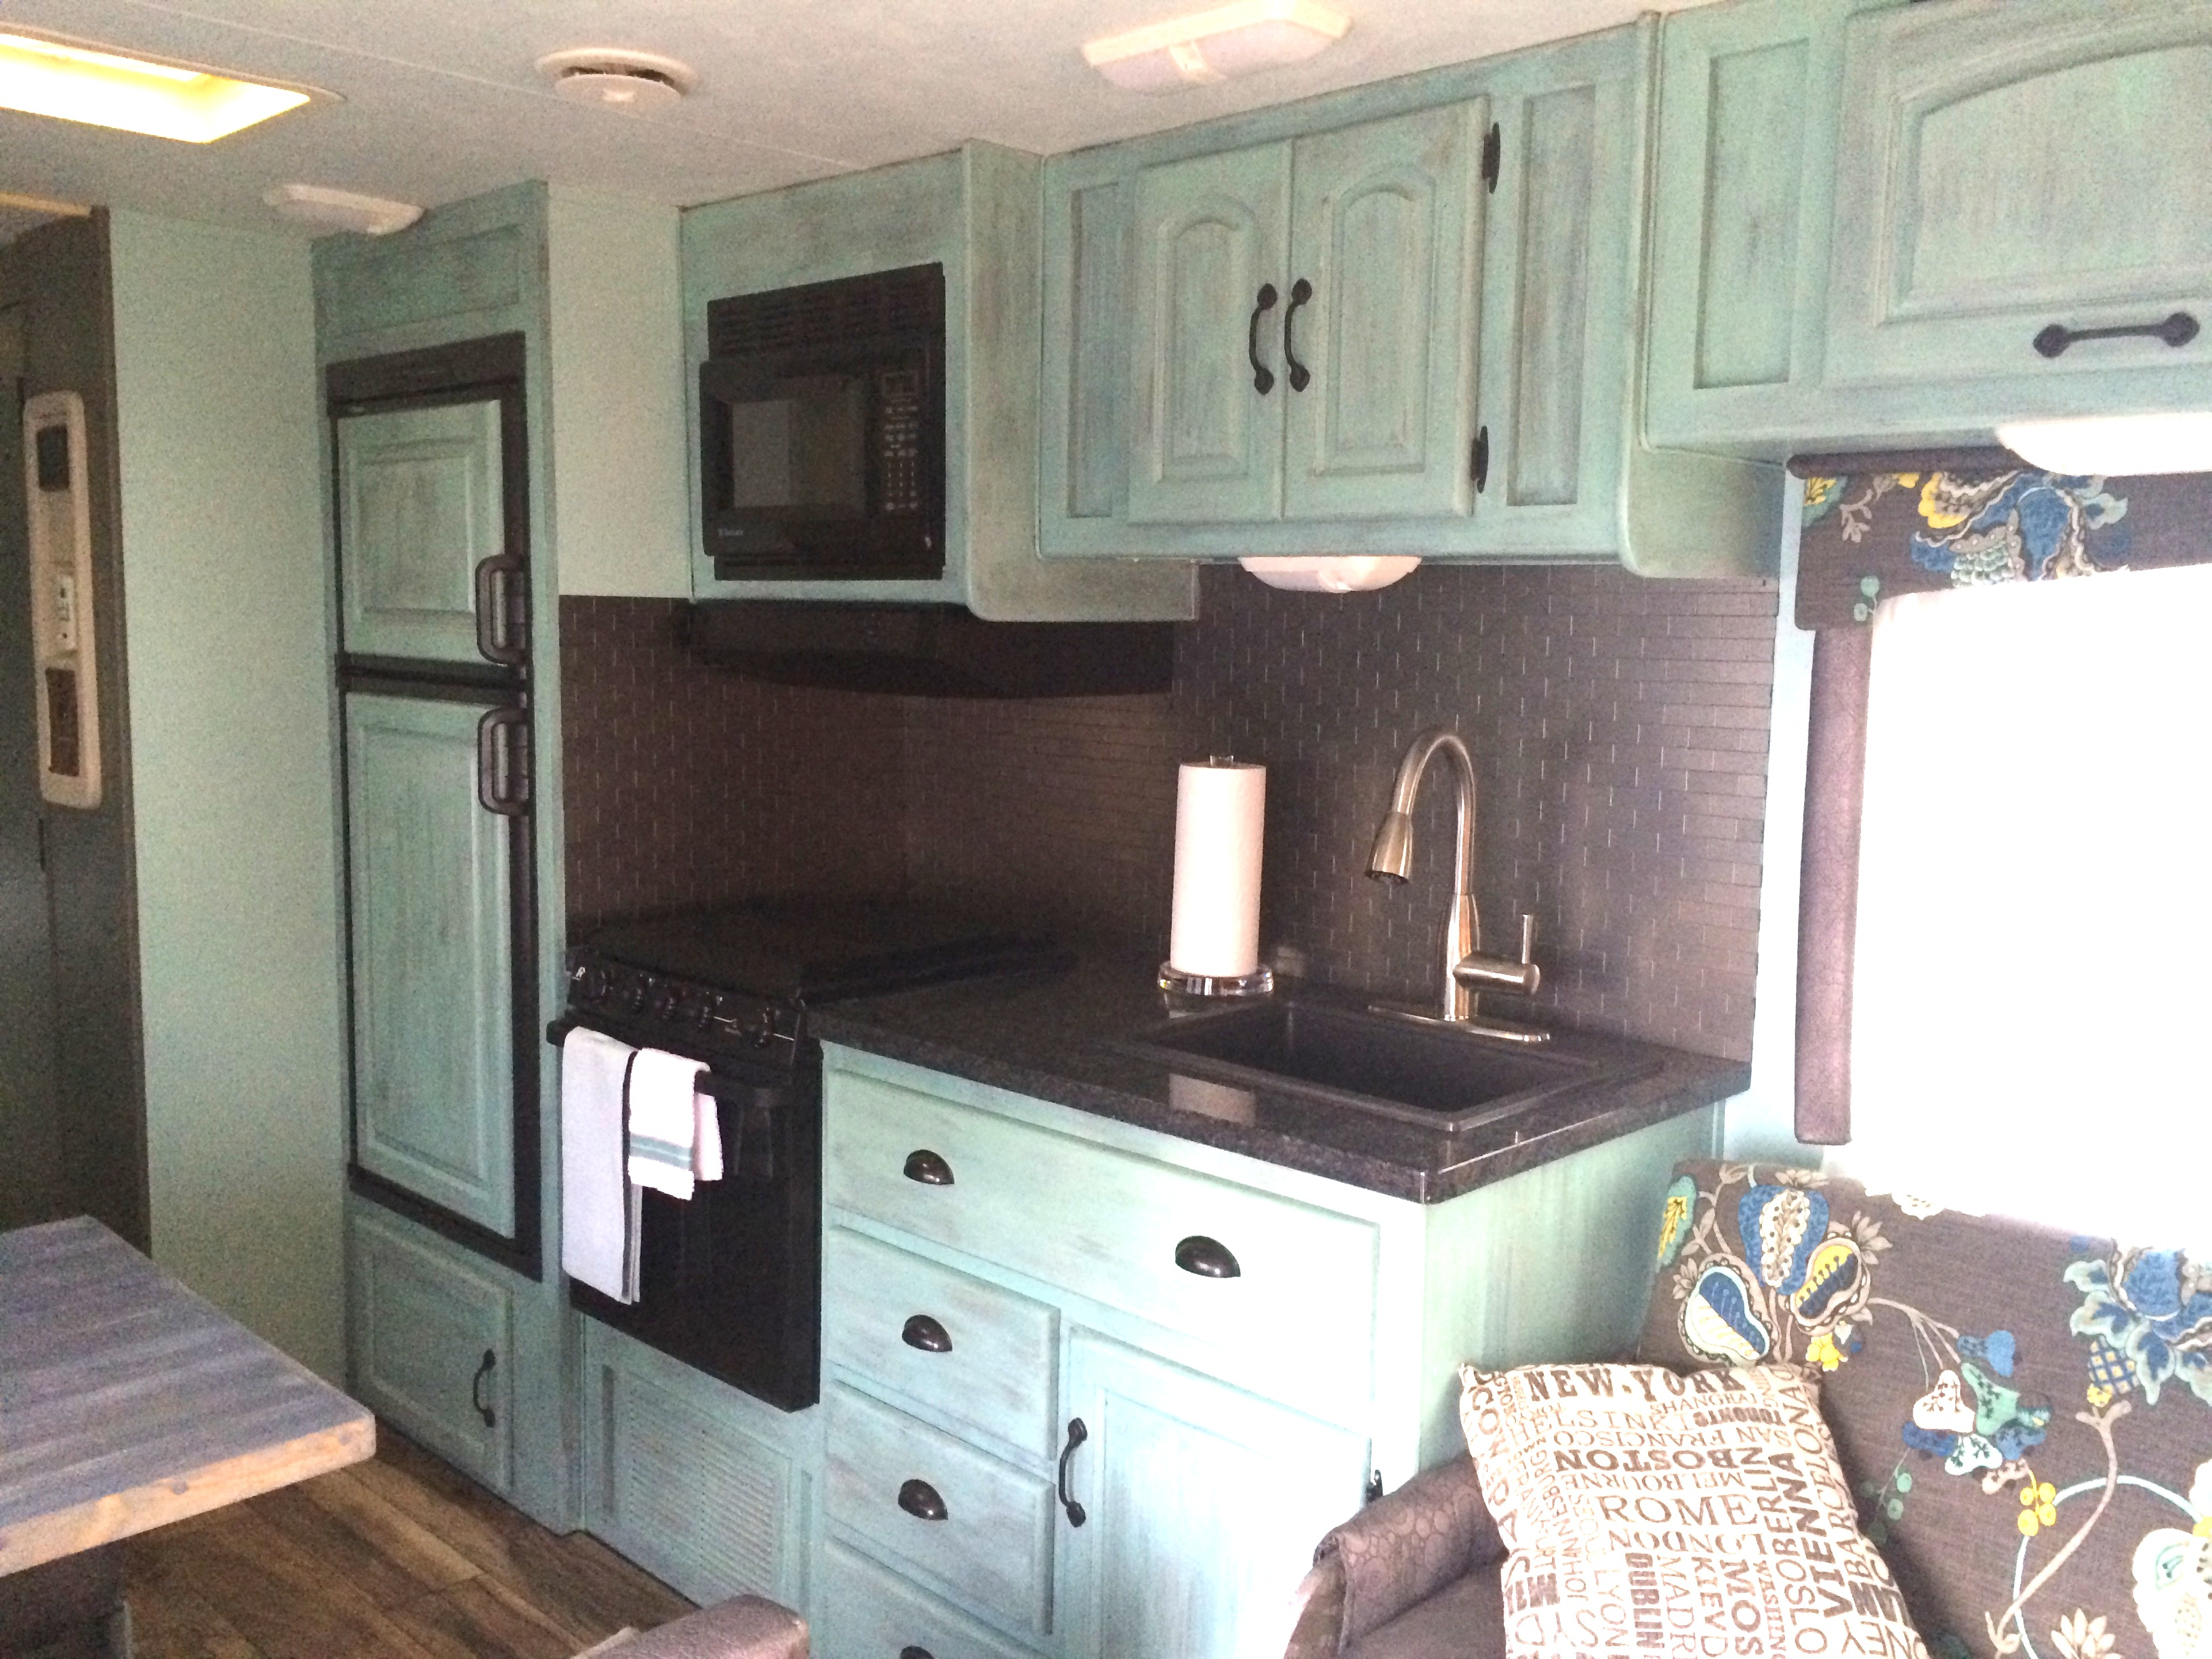 Incompetence in rving rv escape Redo my kitchen